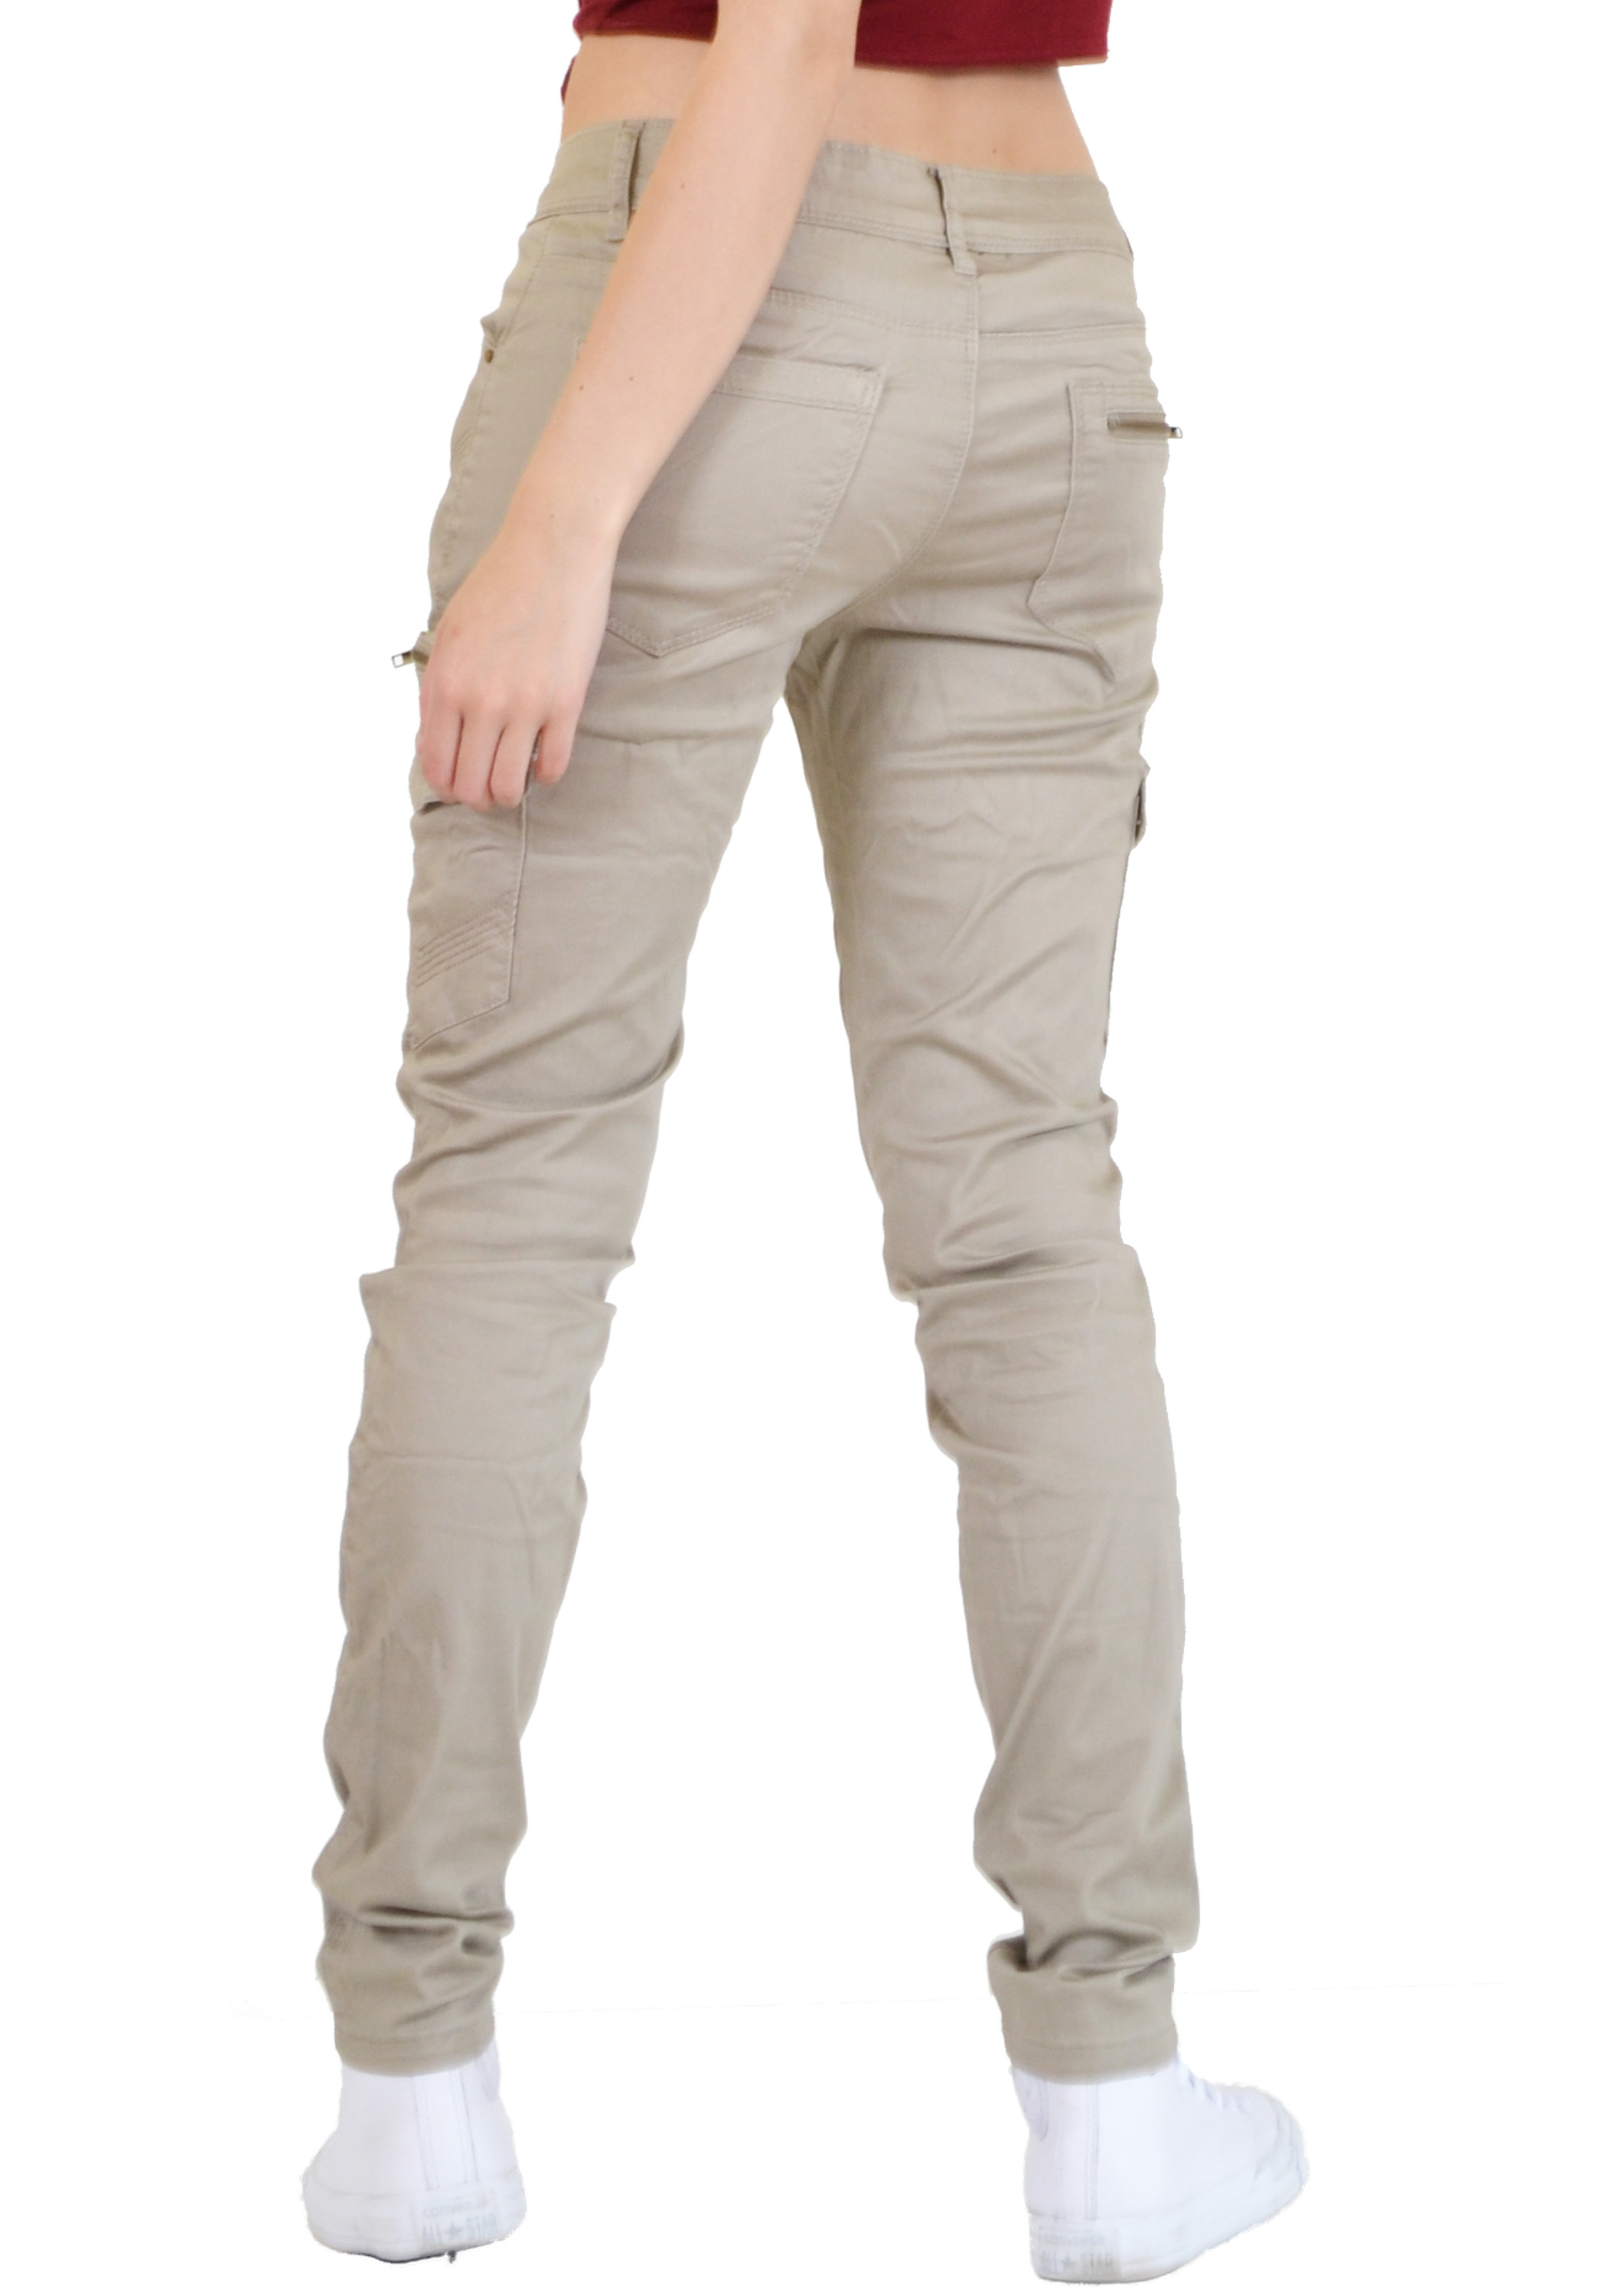 Model New Womens Grey Slim Fitted Combat Pants Skinny Cargo Trousers